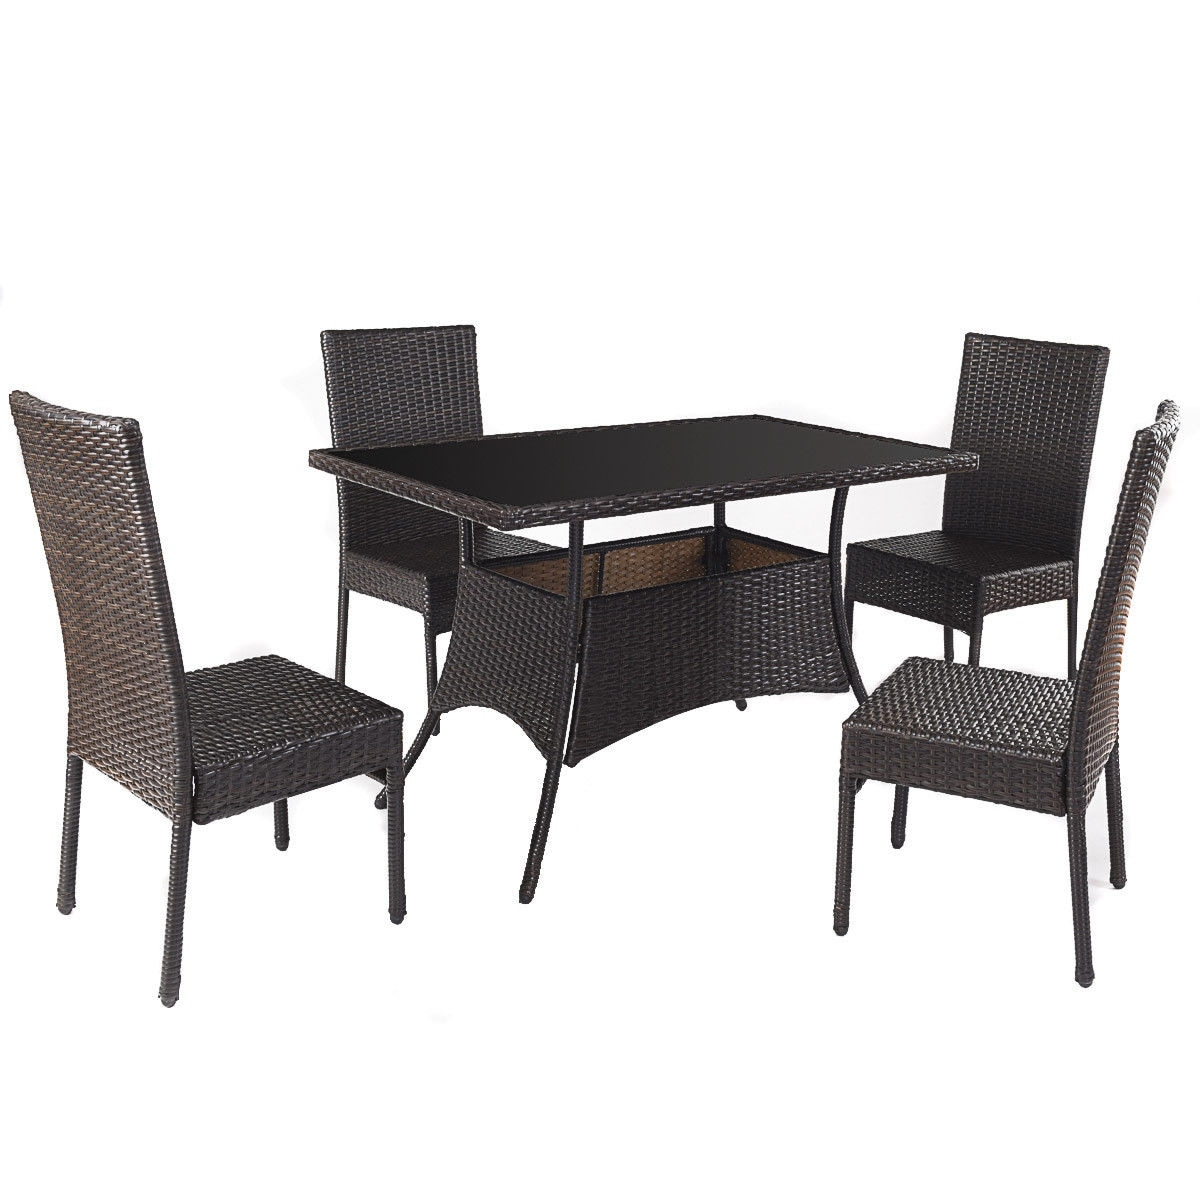 Costway 5 Piece Outdoor Patio Furniture Rattan Dining Table Cushioned Chairs Set Free Shipping Today 20445706